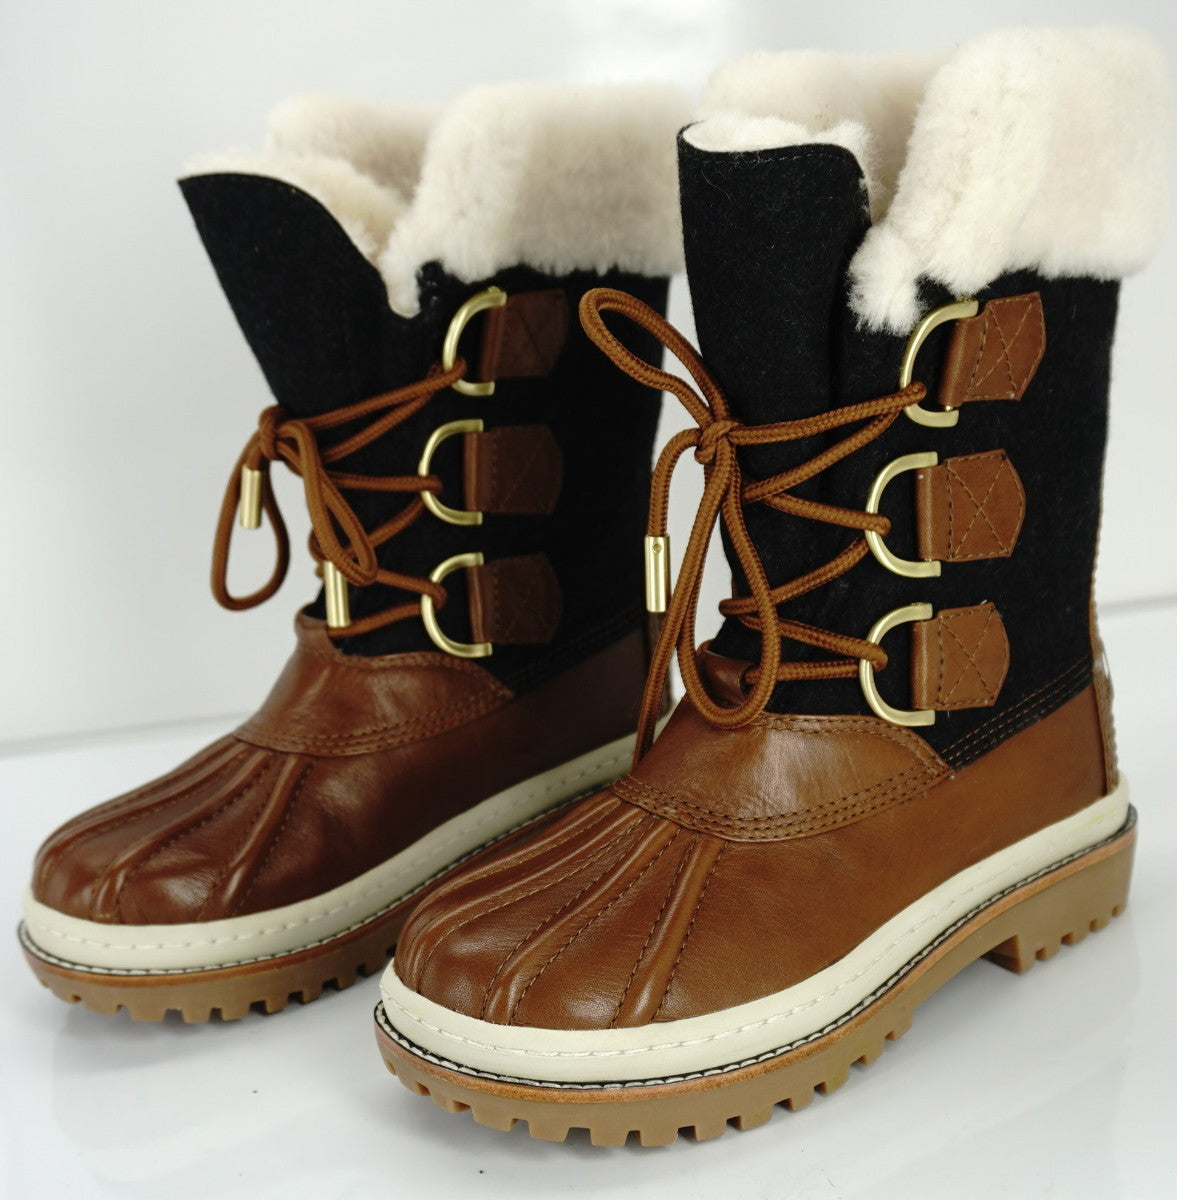 Tory Burch Grey Flannel Brown Leather Duck Boots Size 5 Shearling Trim NIB $295